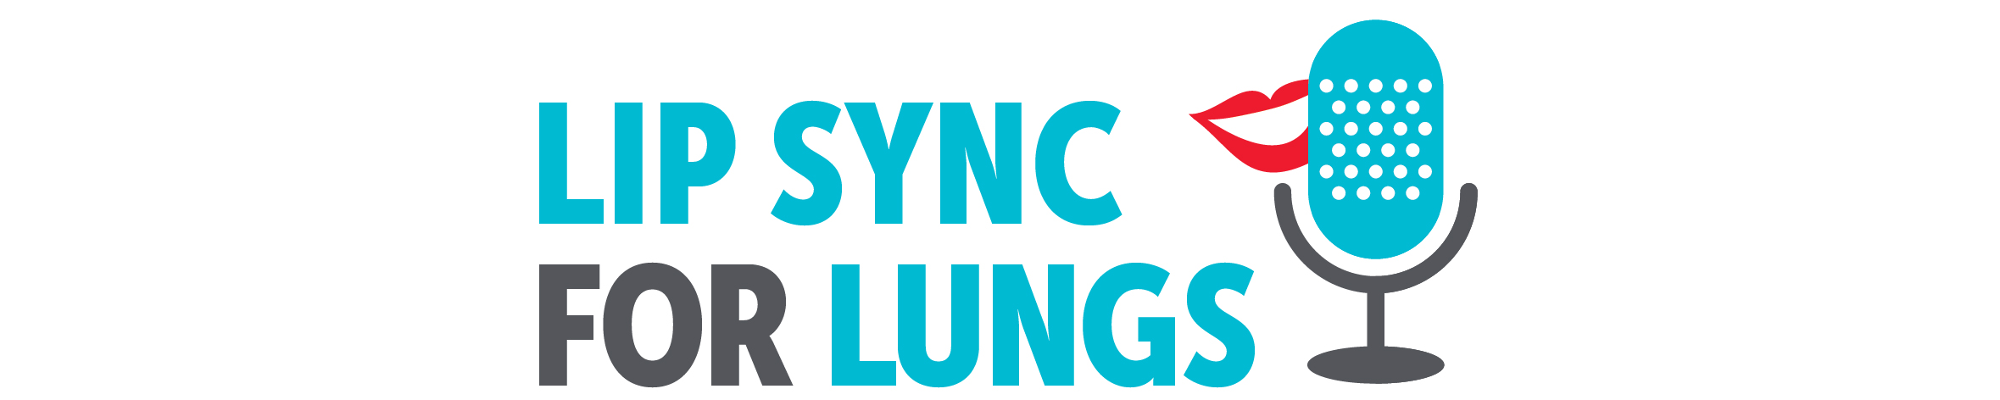 lip sync for lungs tampa